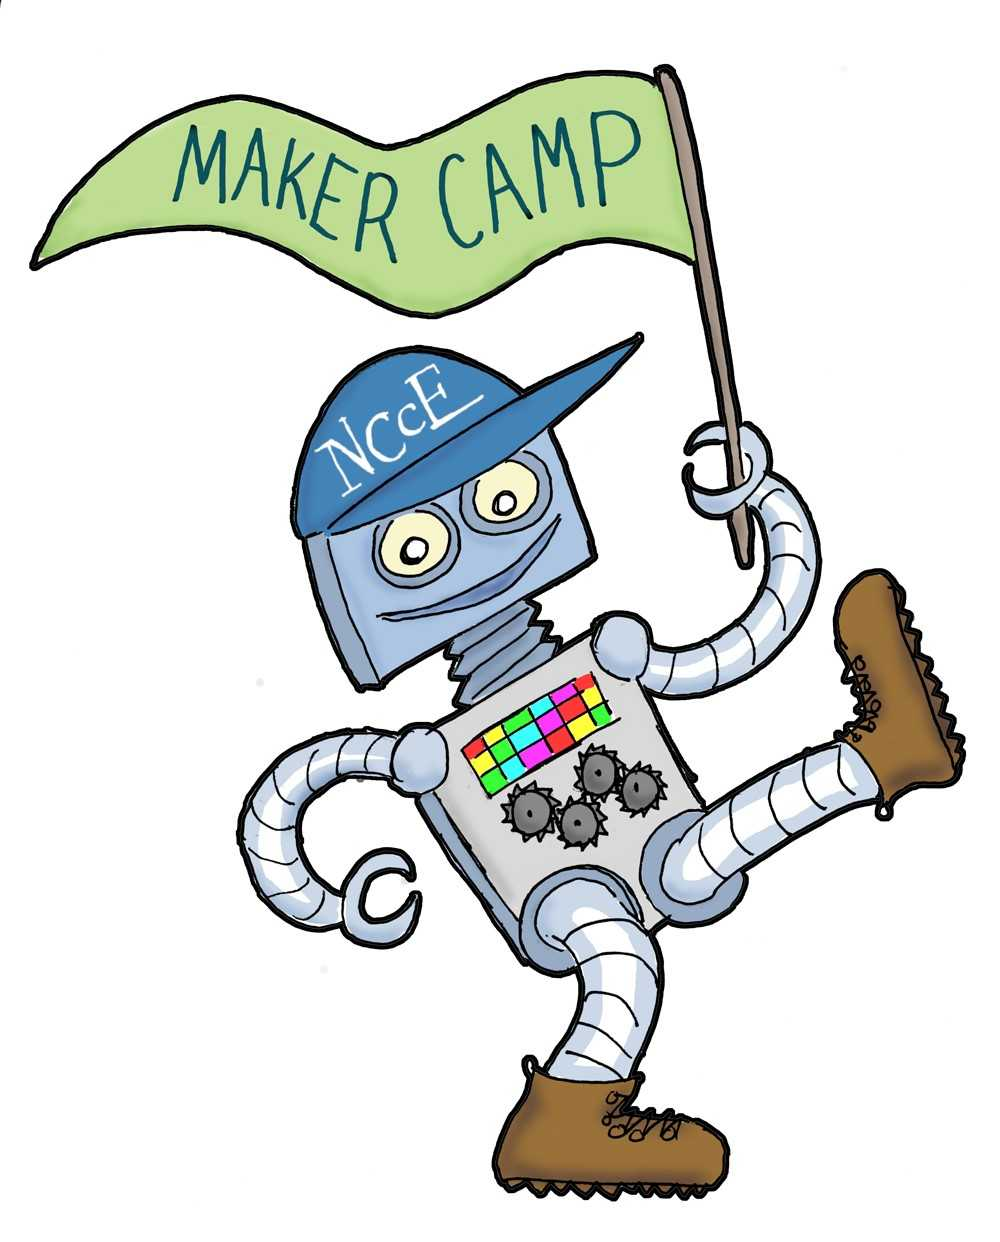 Guest Post: A Summer Camp for Makers: NCCE's Maker Camp